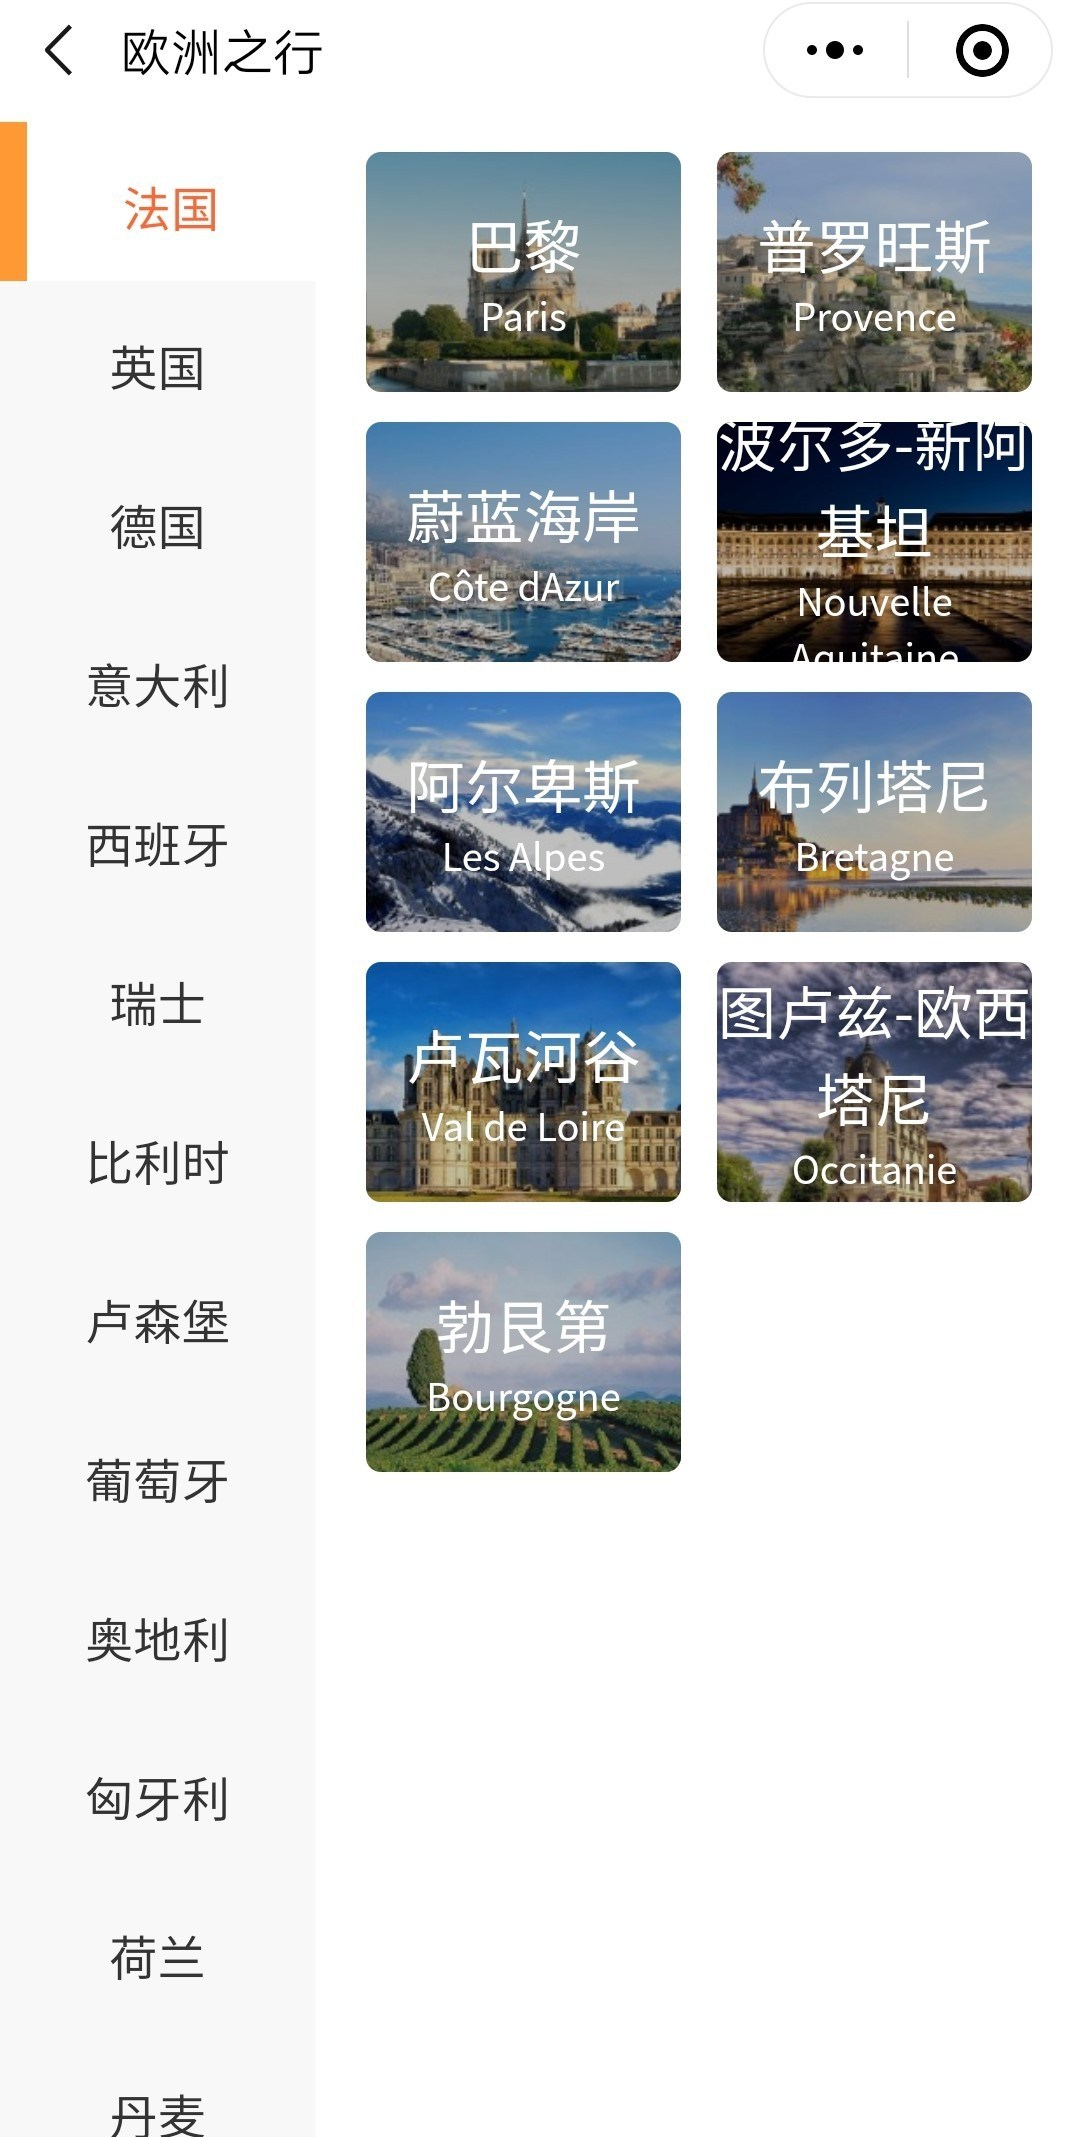 Tourism Wechat Mini-Program - WeChat Travel Experience - EuroPass